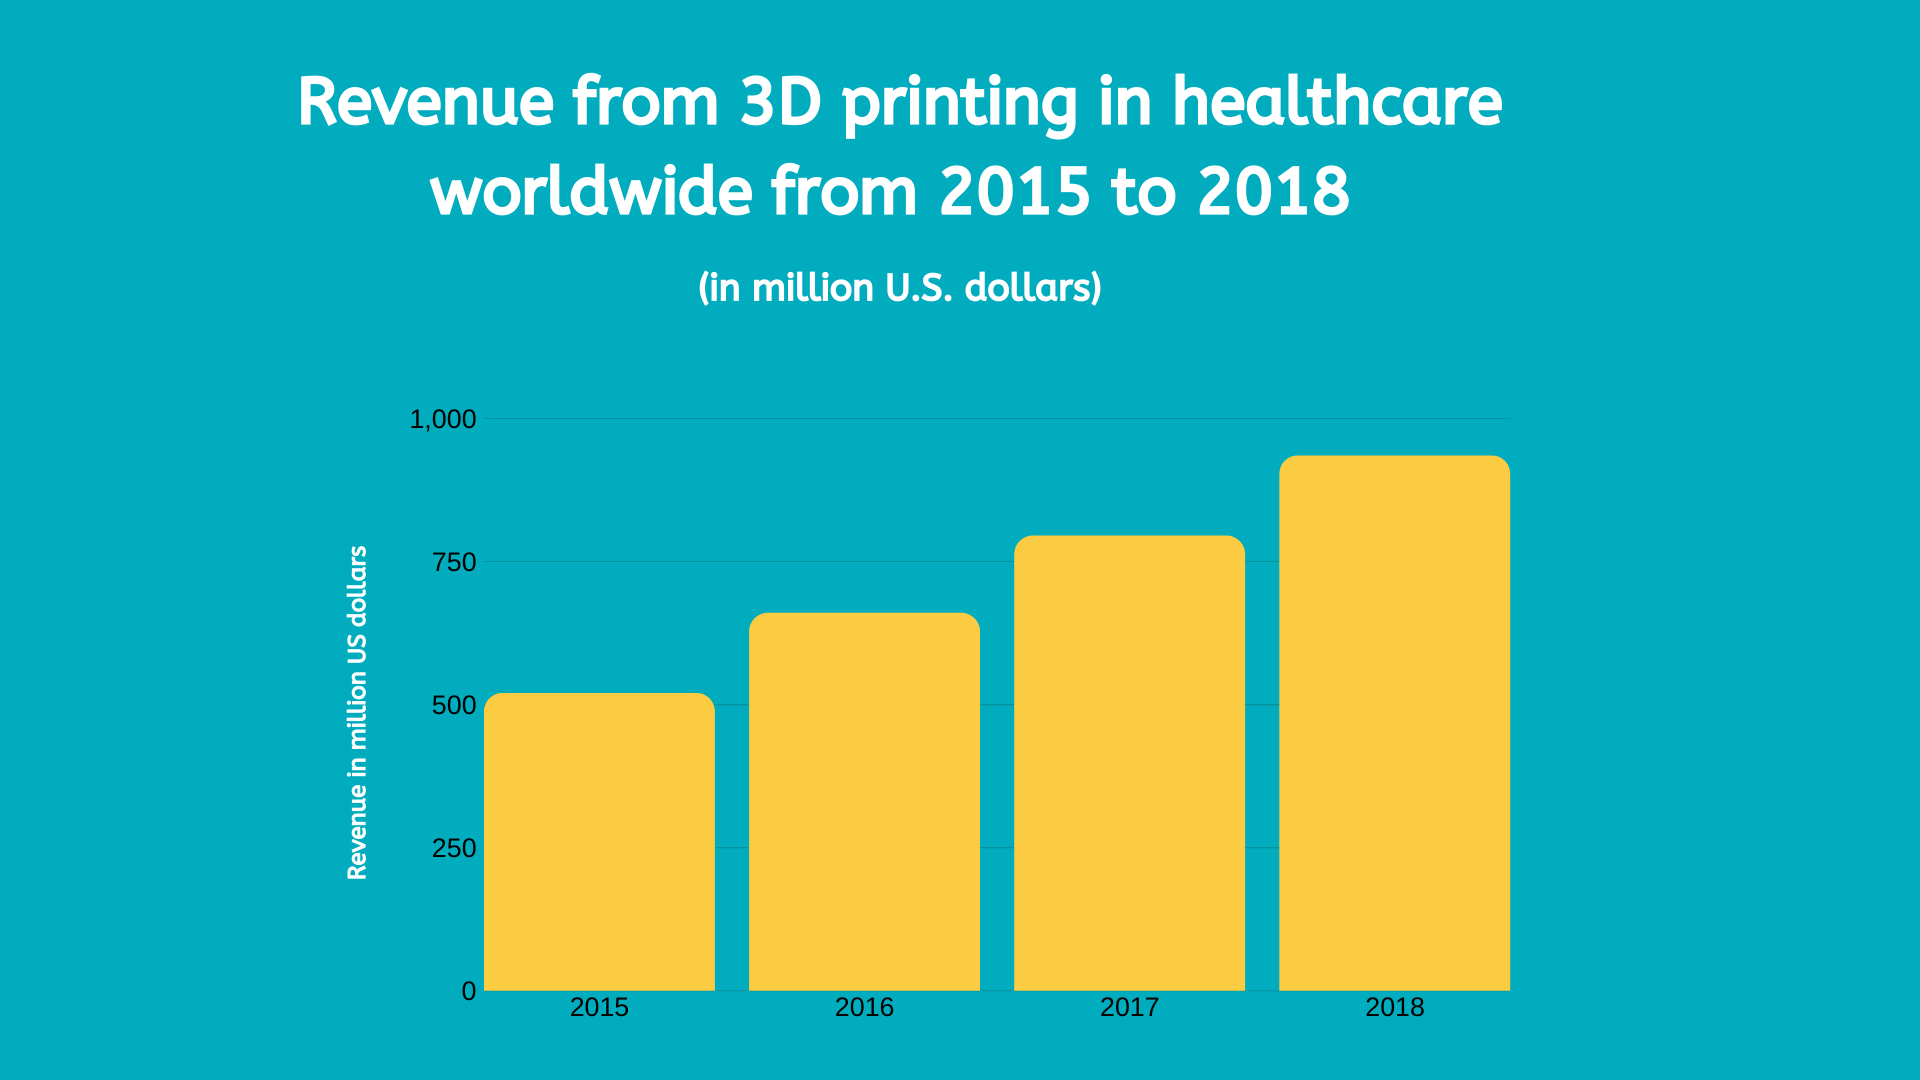 Global revenue in healthcare 3D printing from 2015 to 2018.